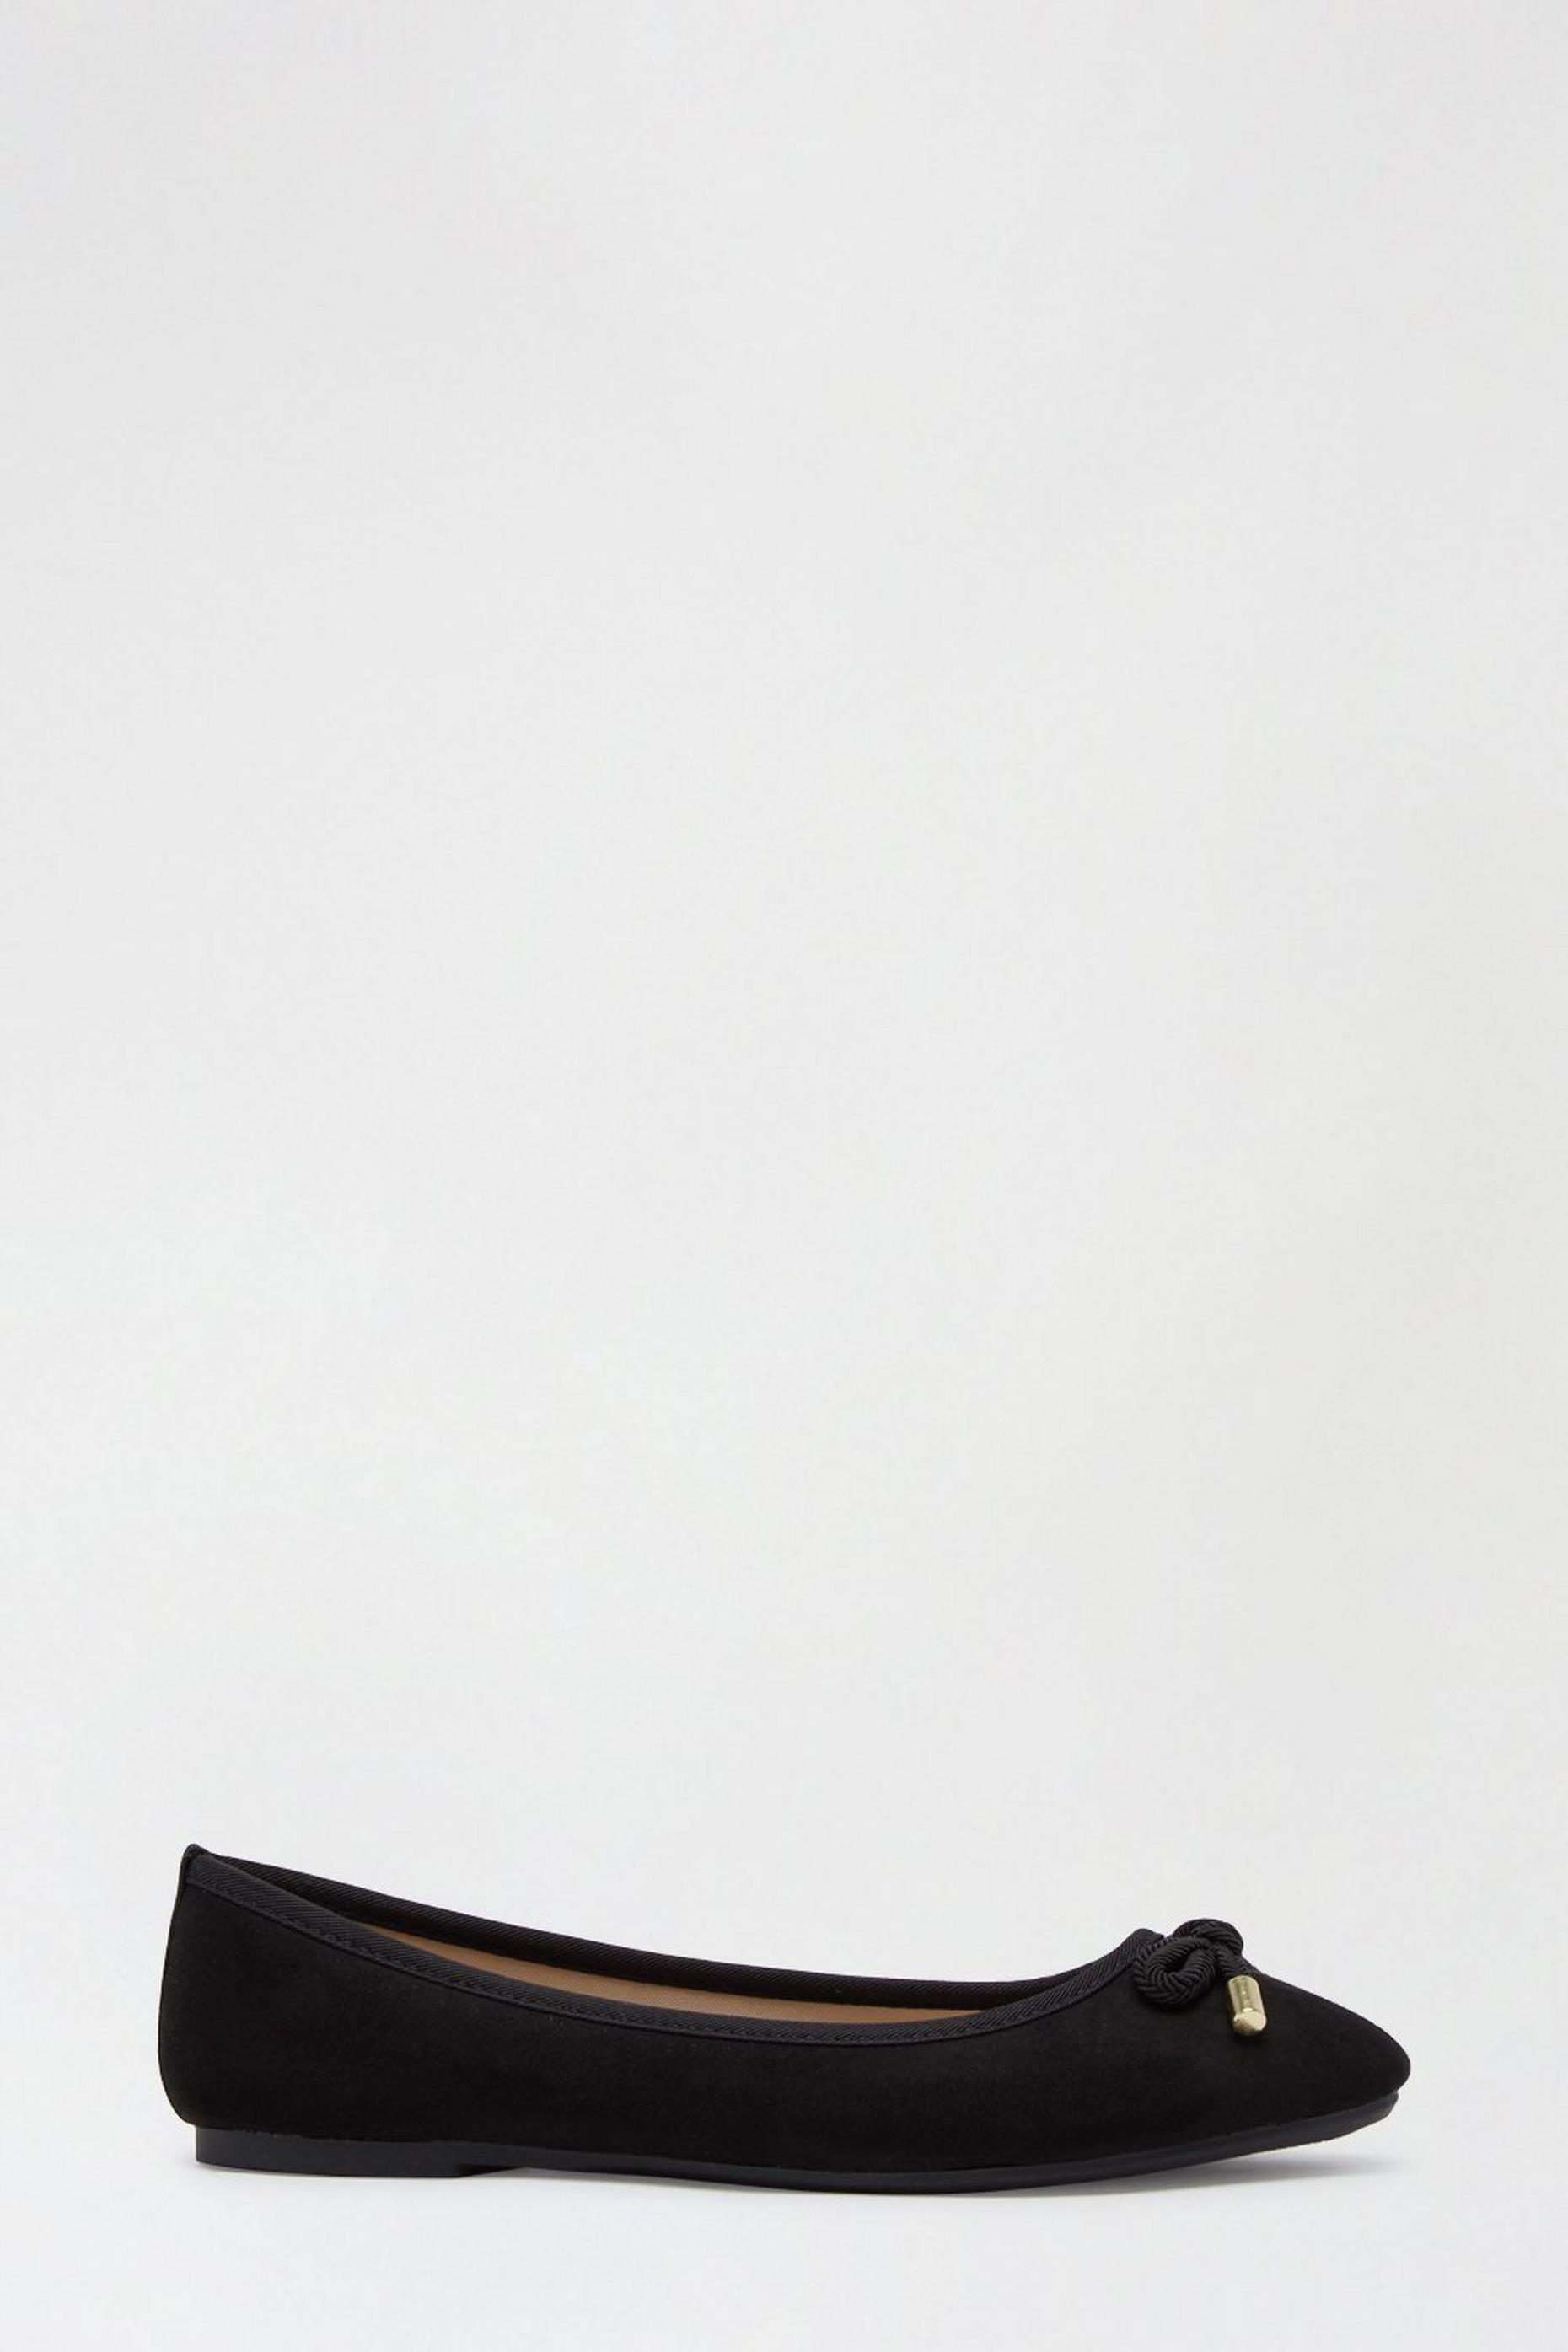 Wide Fit Eco Black Peach Ballerina Pumps